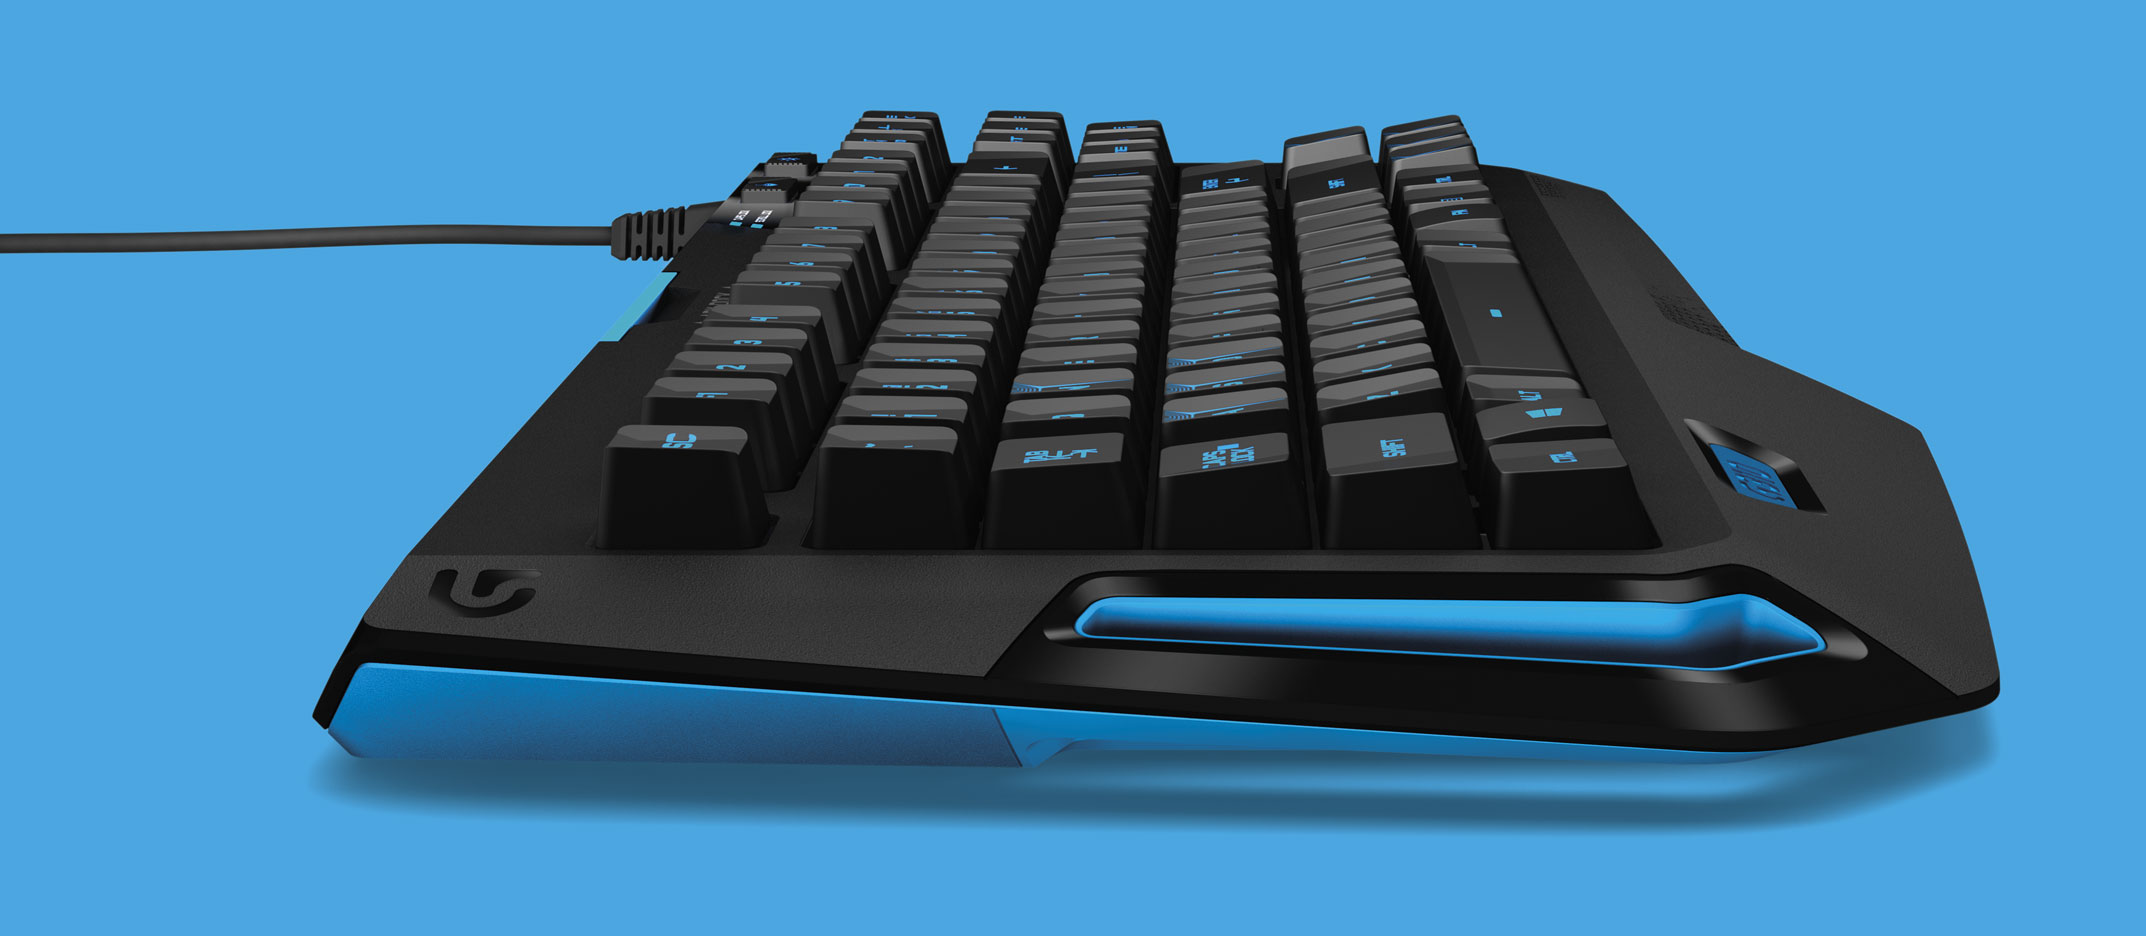 Logitech Keyboard Visualisation